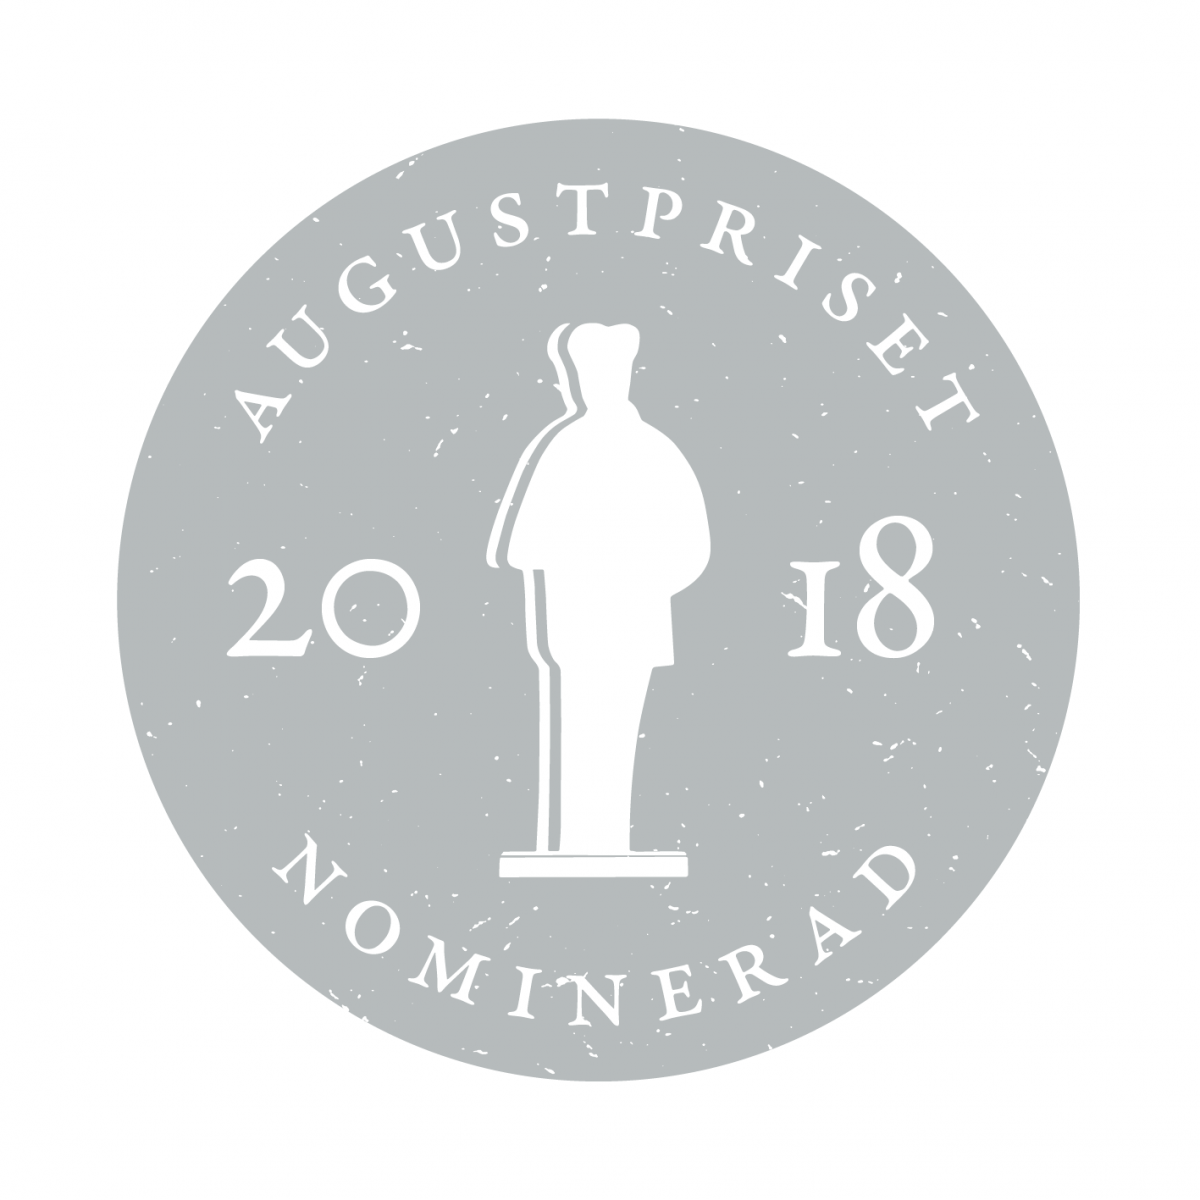 https://www.augustpriset.se/sites/default/files/augustmedaljer_2018_nominerad.png